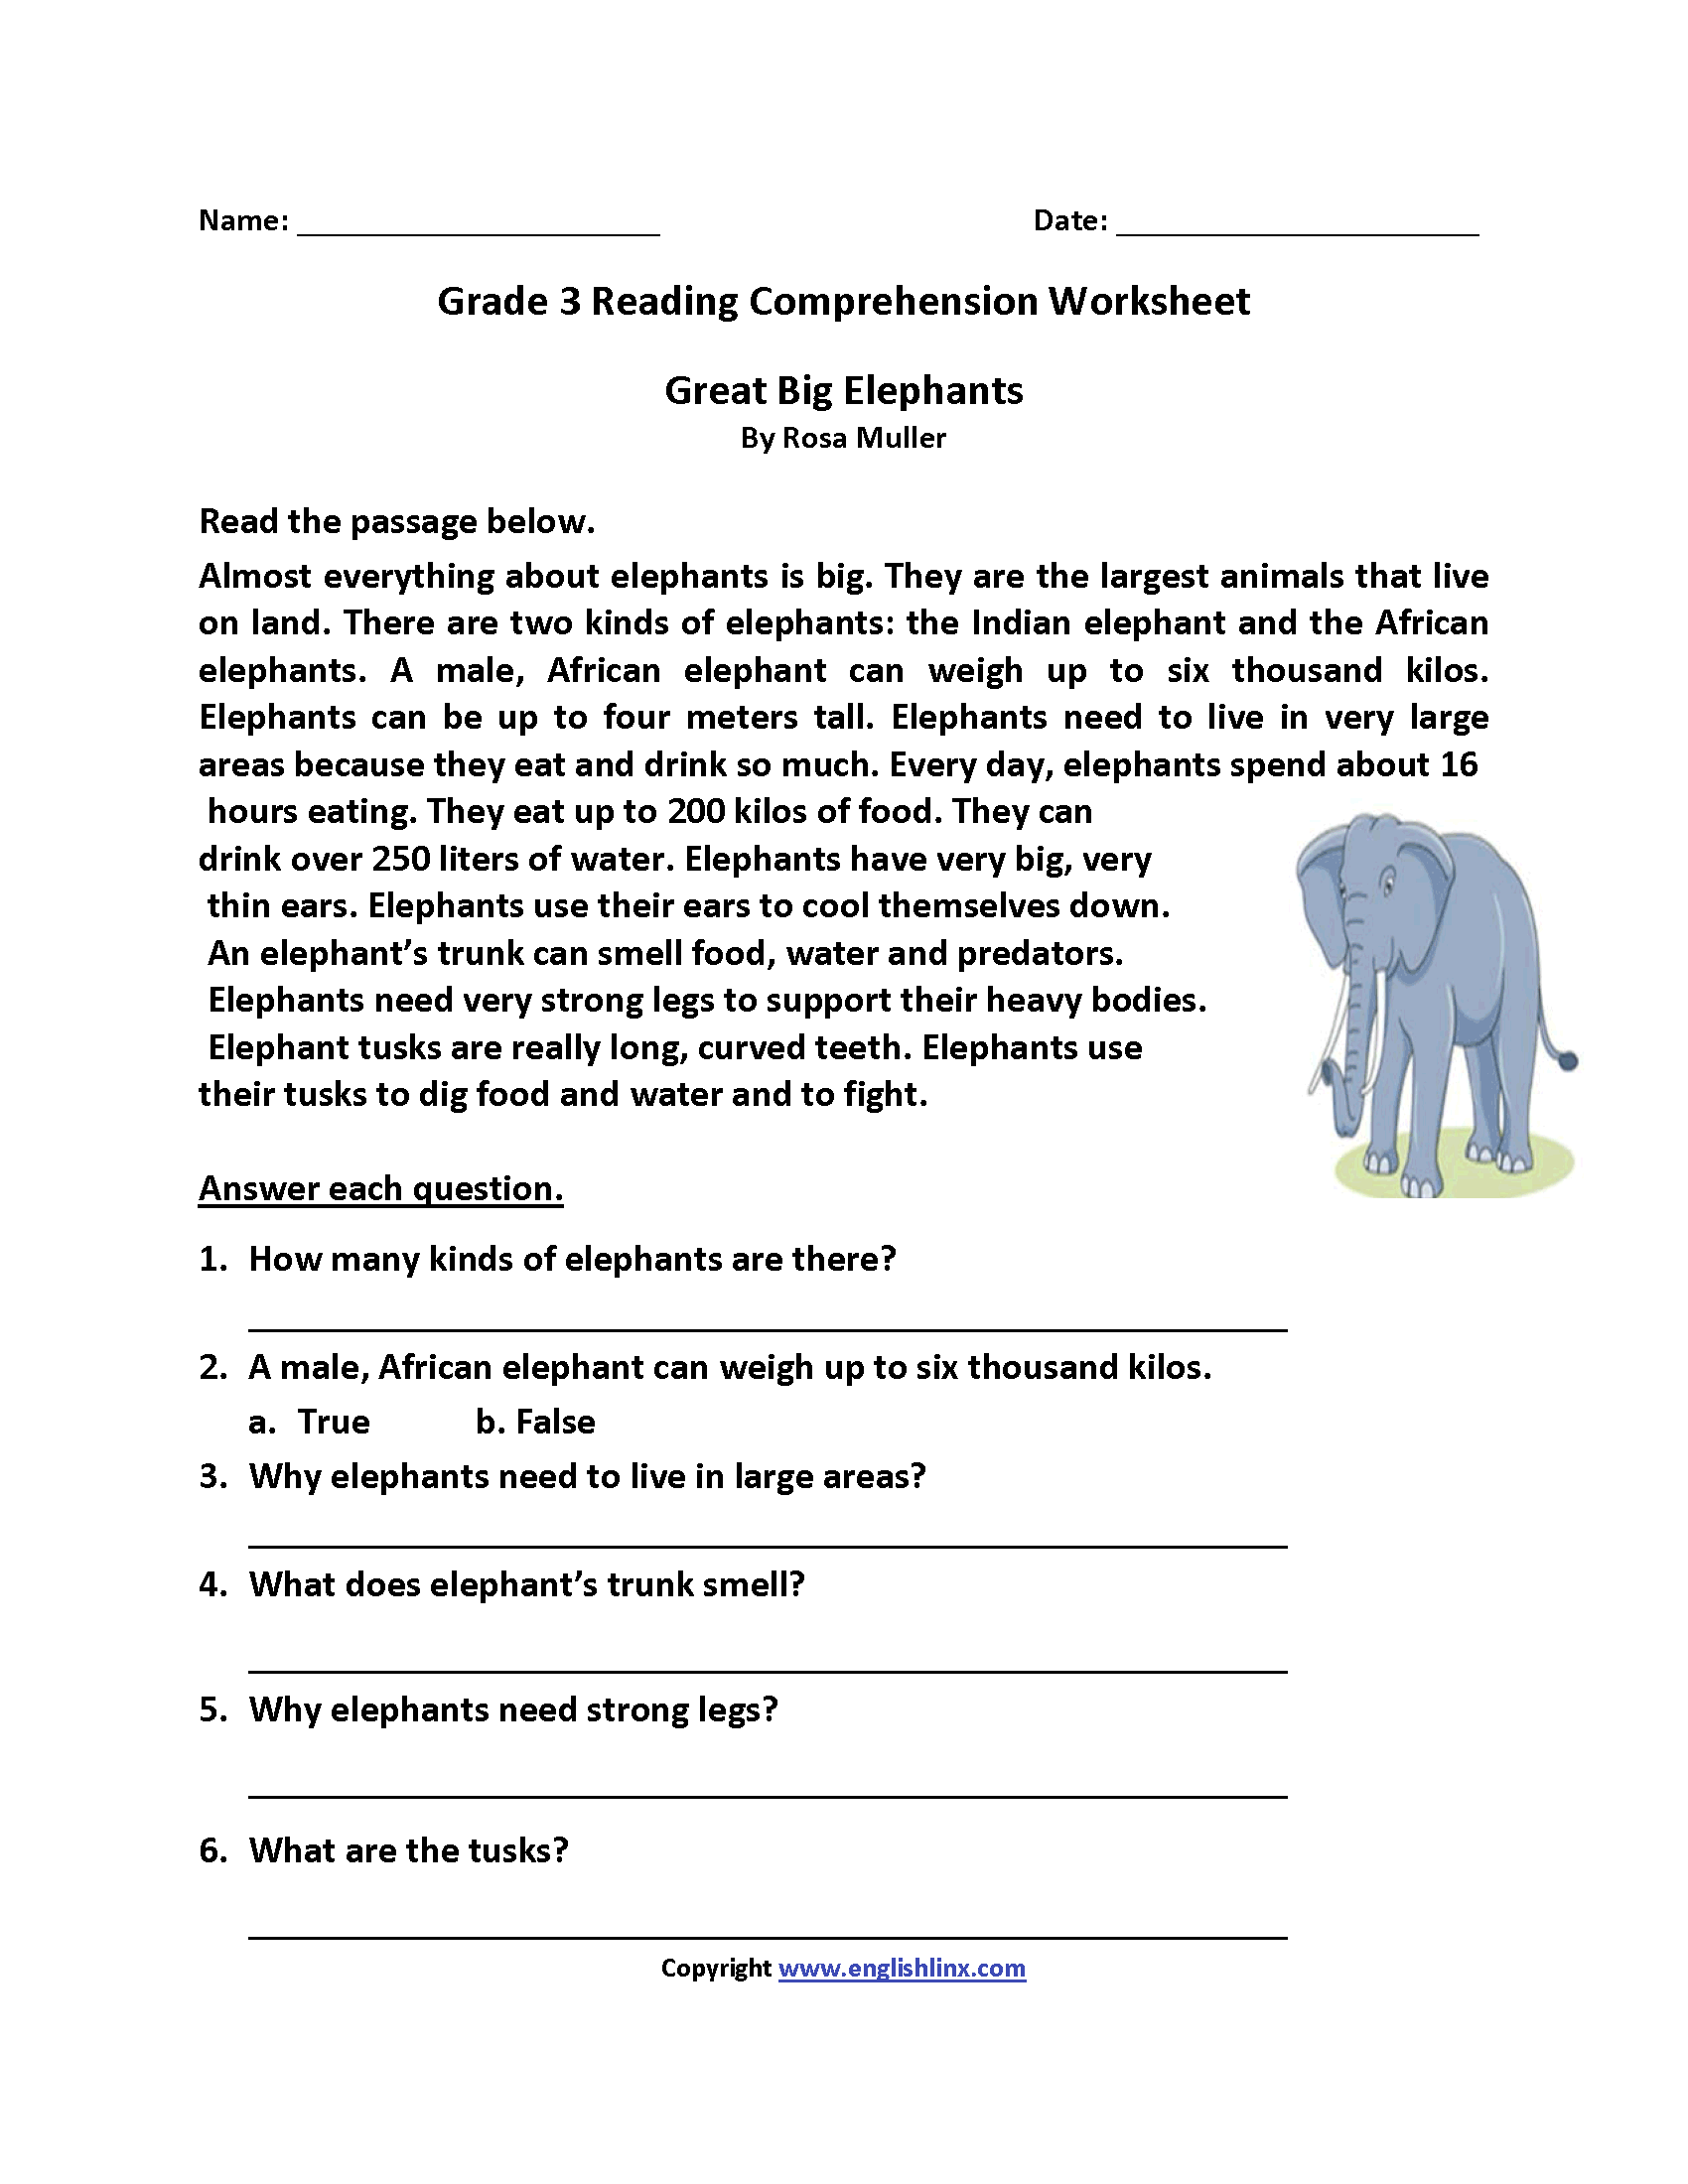 Great Big Elephants Third Grade Reading Worksheets | Third ...